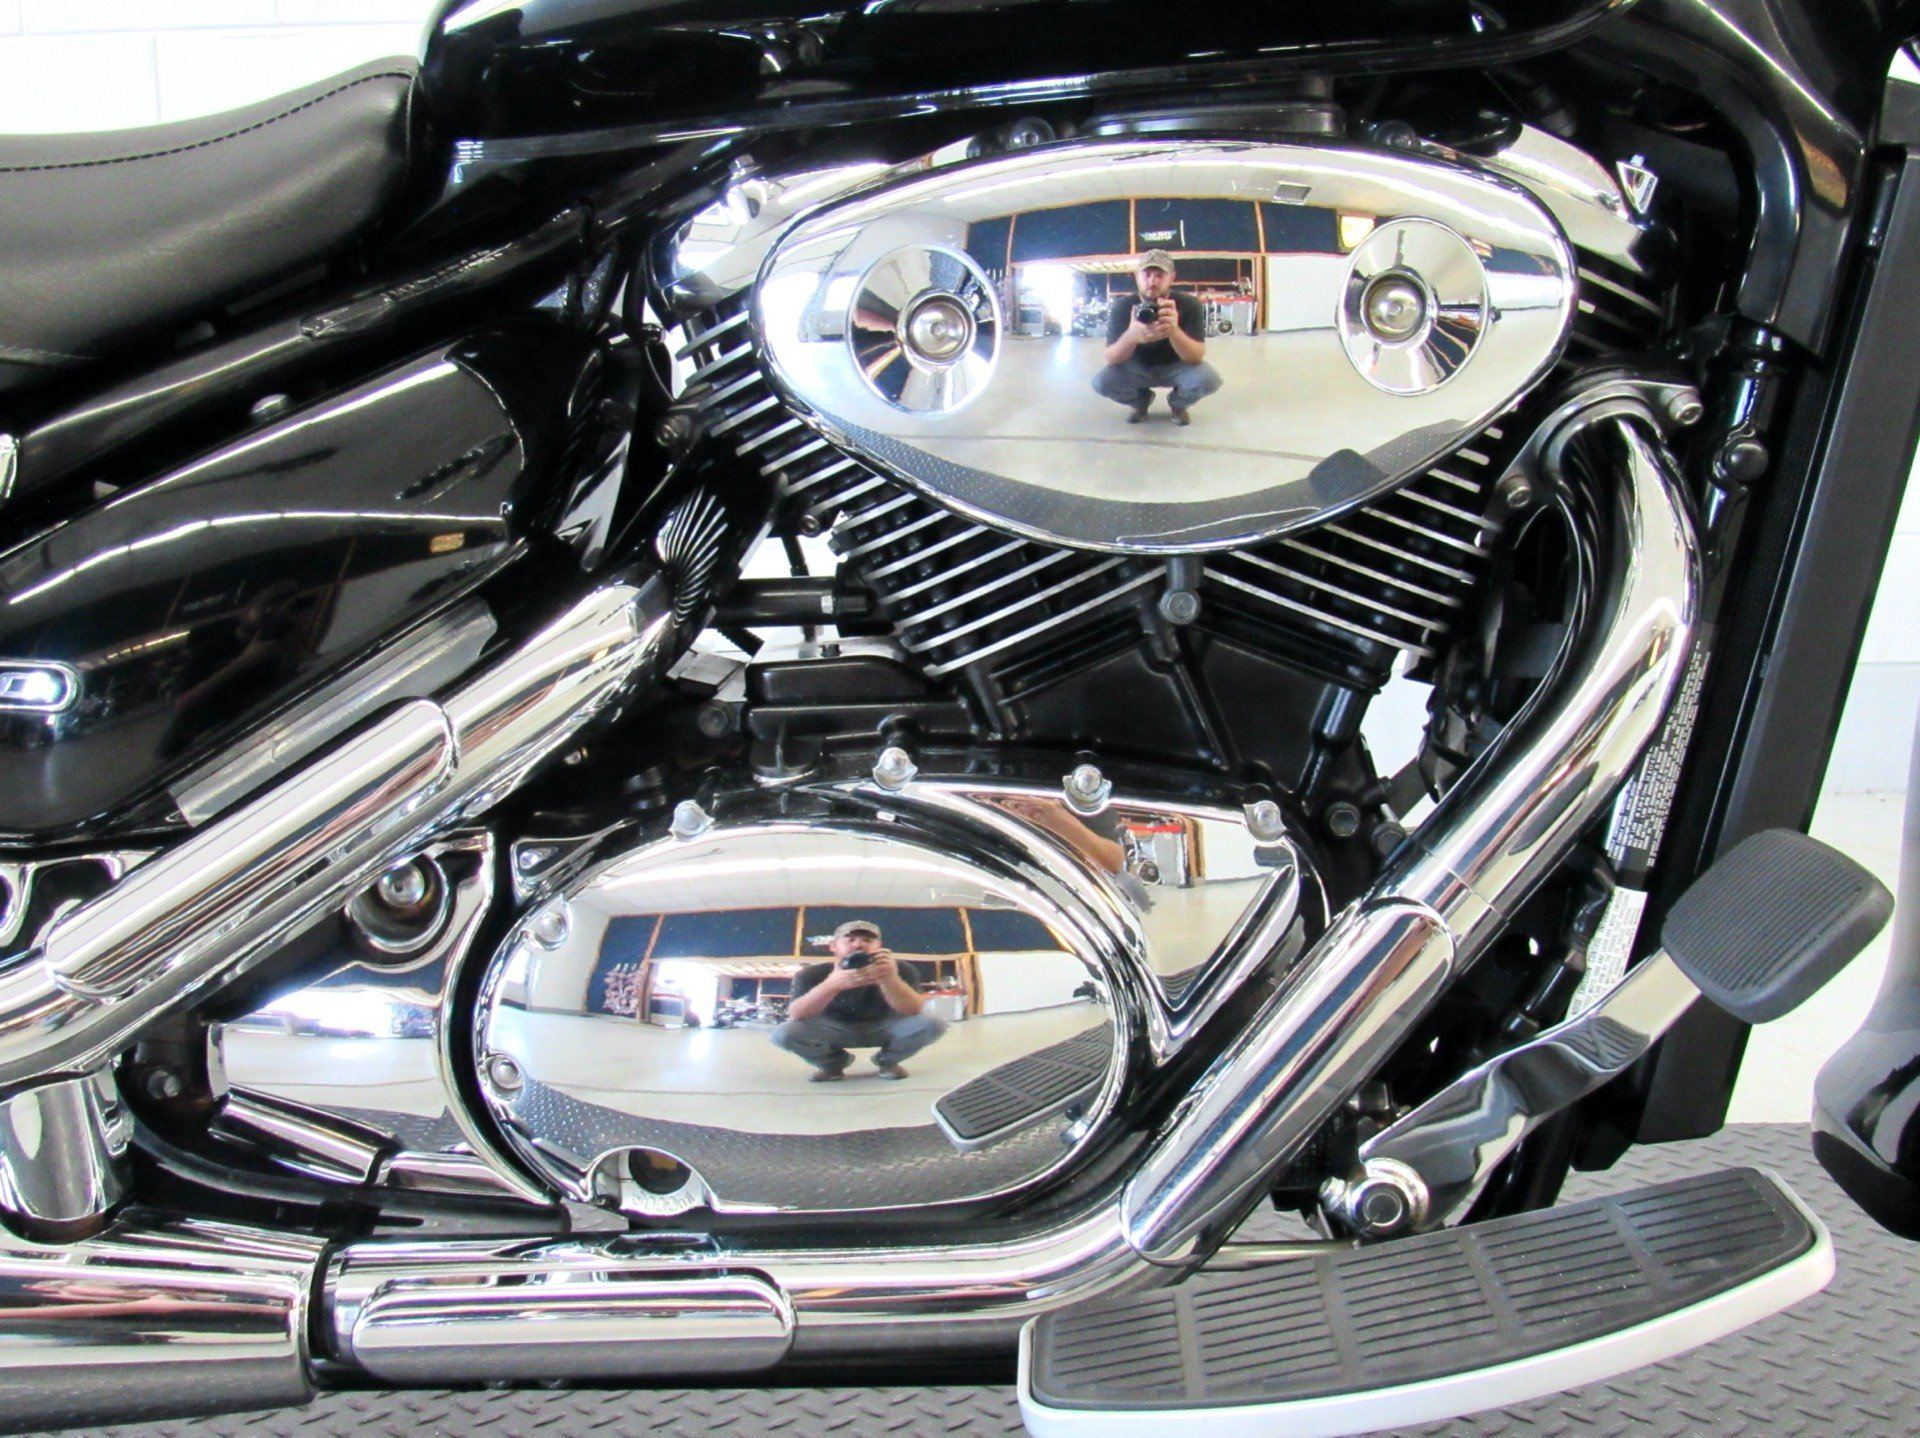 2008 Suzuki Boulevard C50 Black in Fredericksburg, Virginia - Photo 14